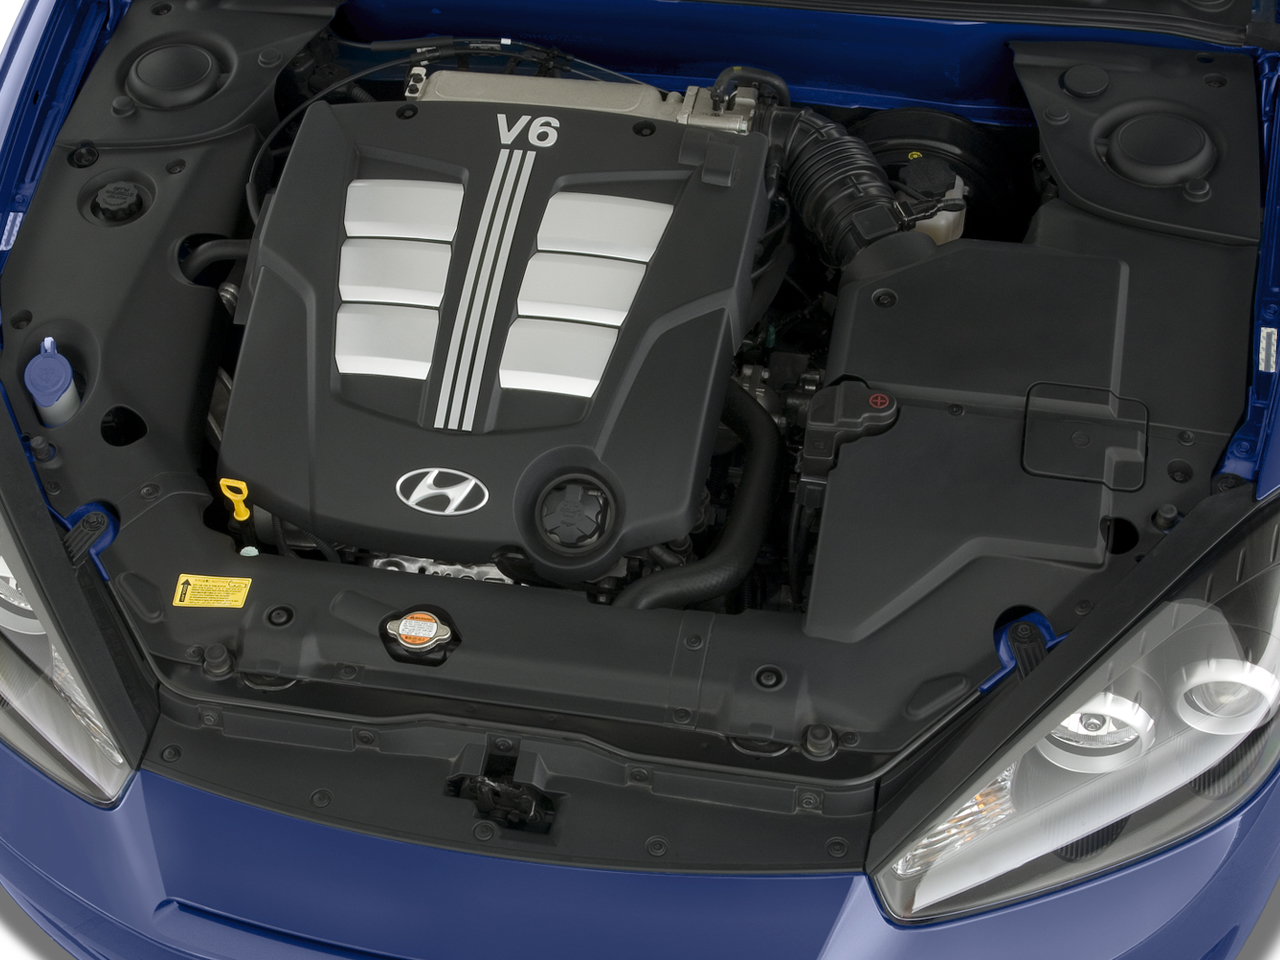 Hyundai Tiburon engine #2